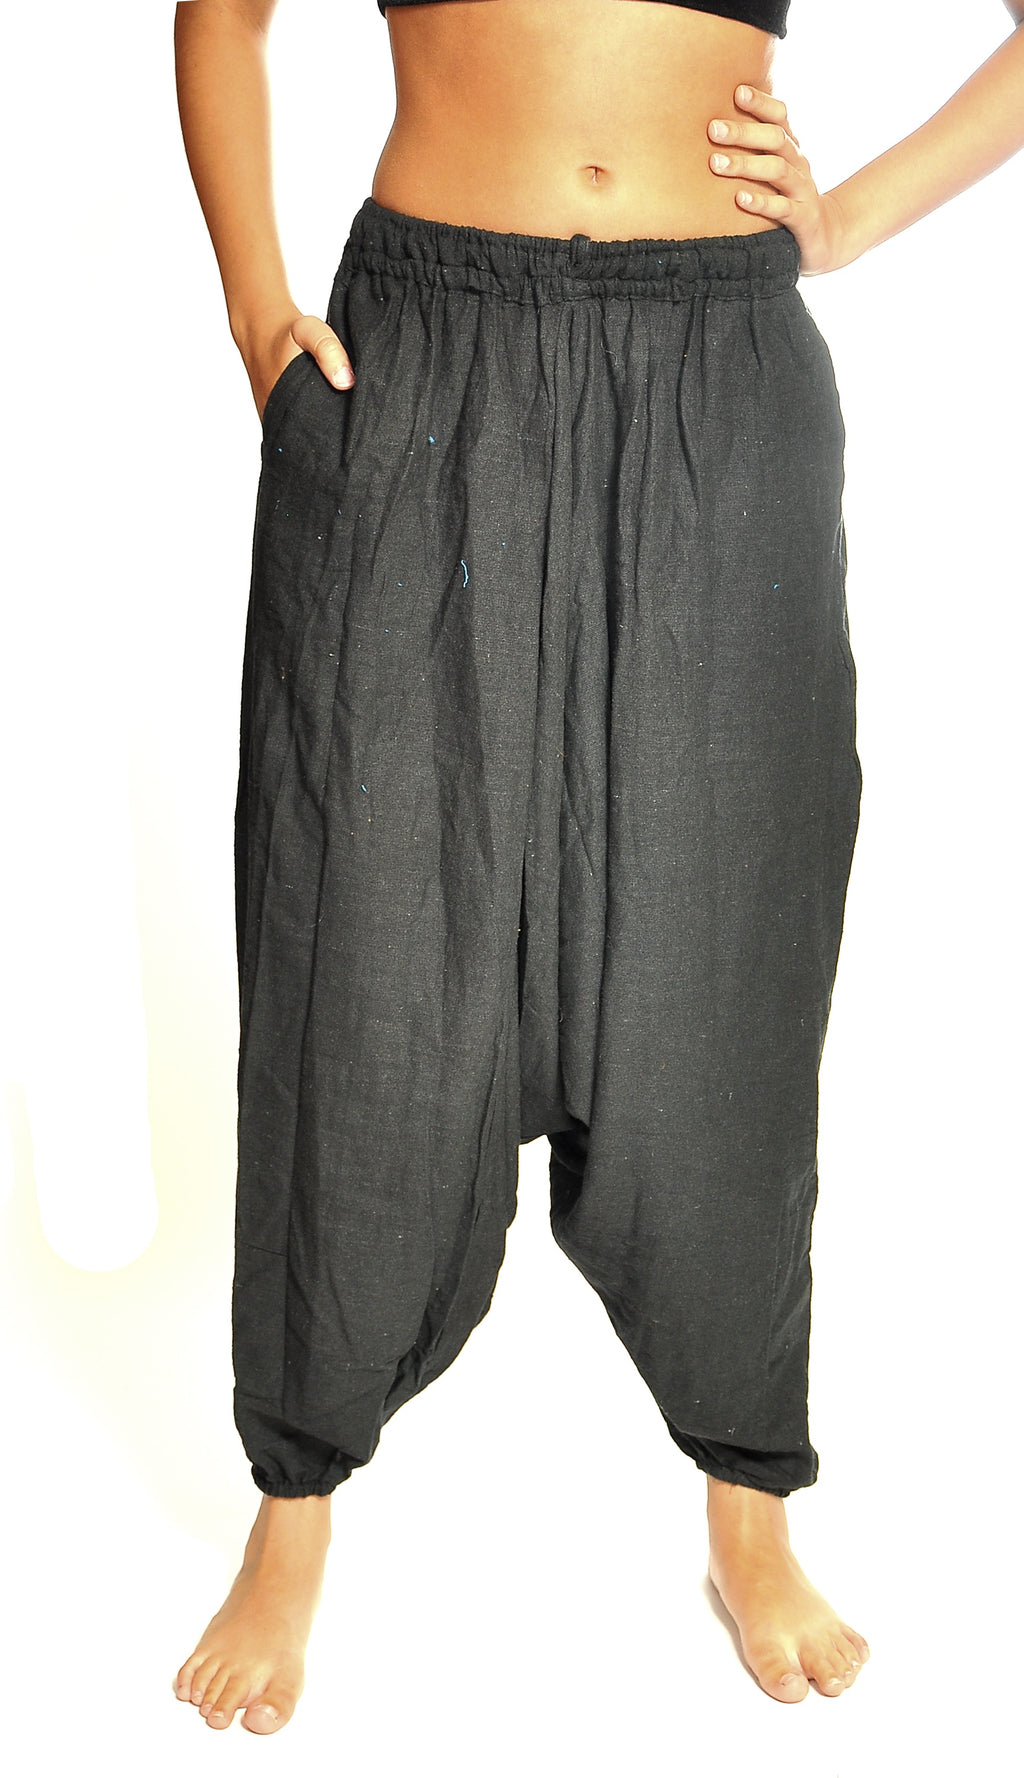 Black Harem Organic Cotton Pants with Pockets